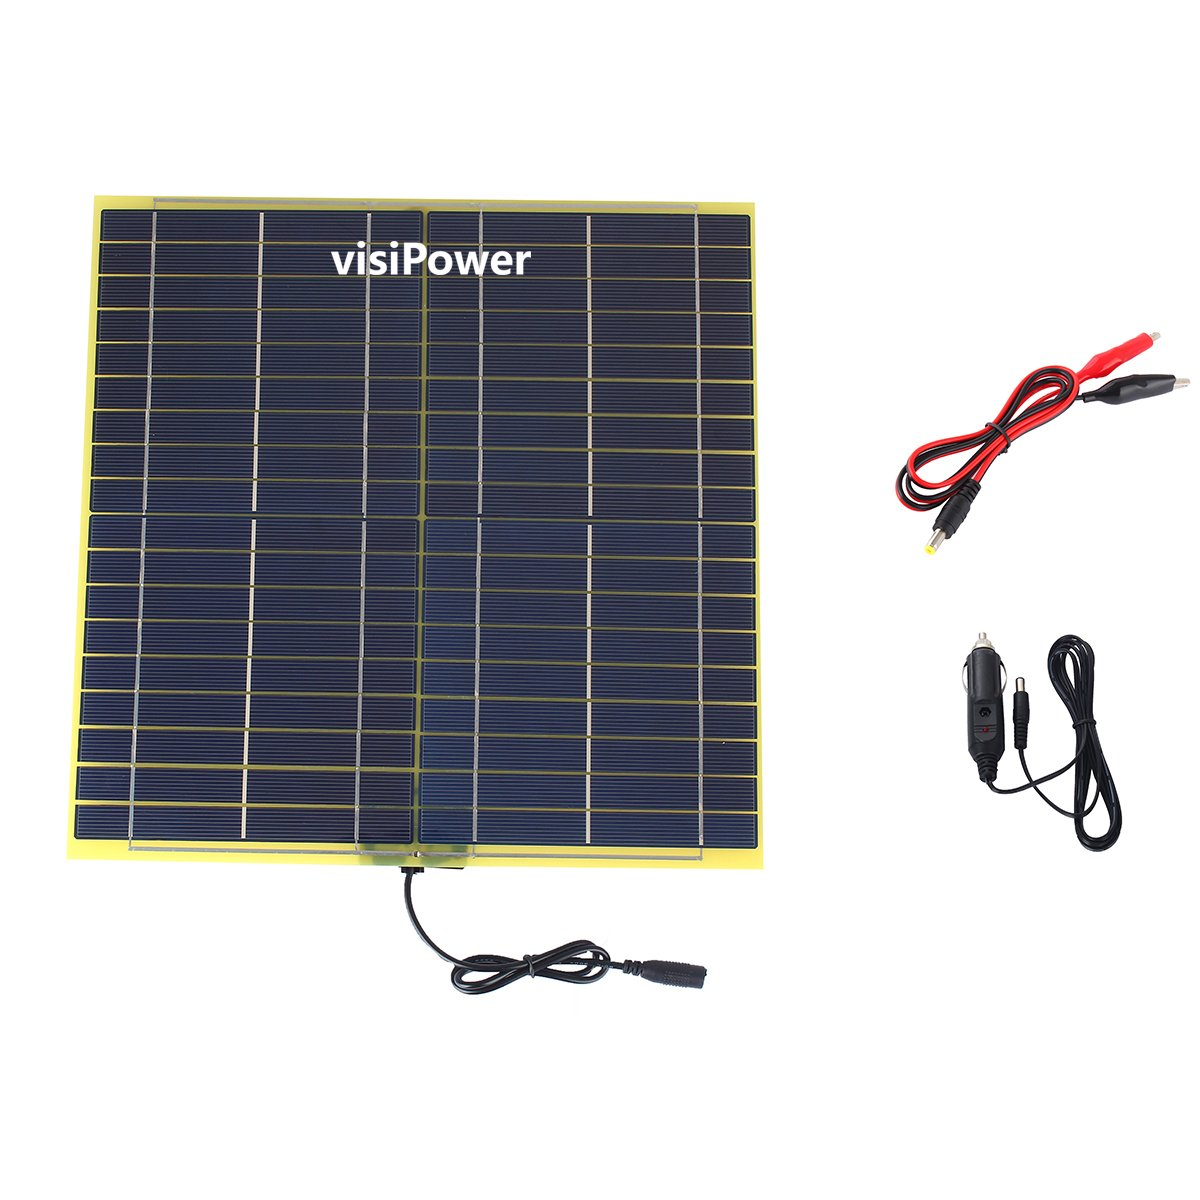 YZY TECH visiPower 15W 18V 850mA Glass Fiber Solar Cell Solar Panel For 12V Car Battery Charger